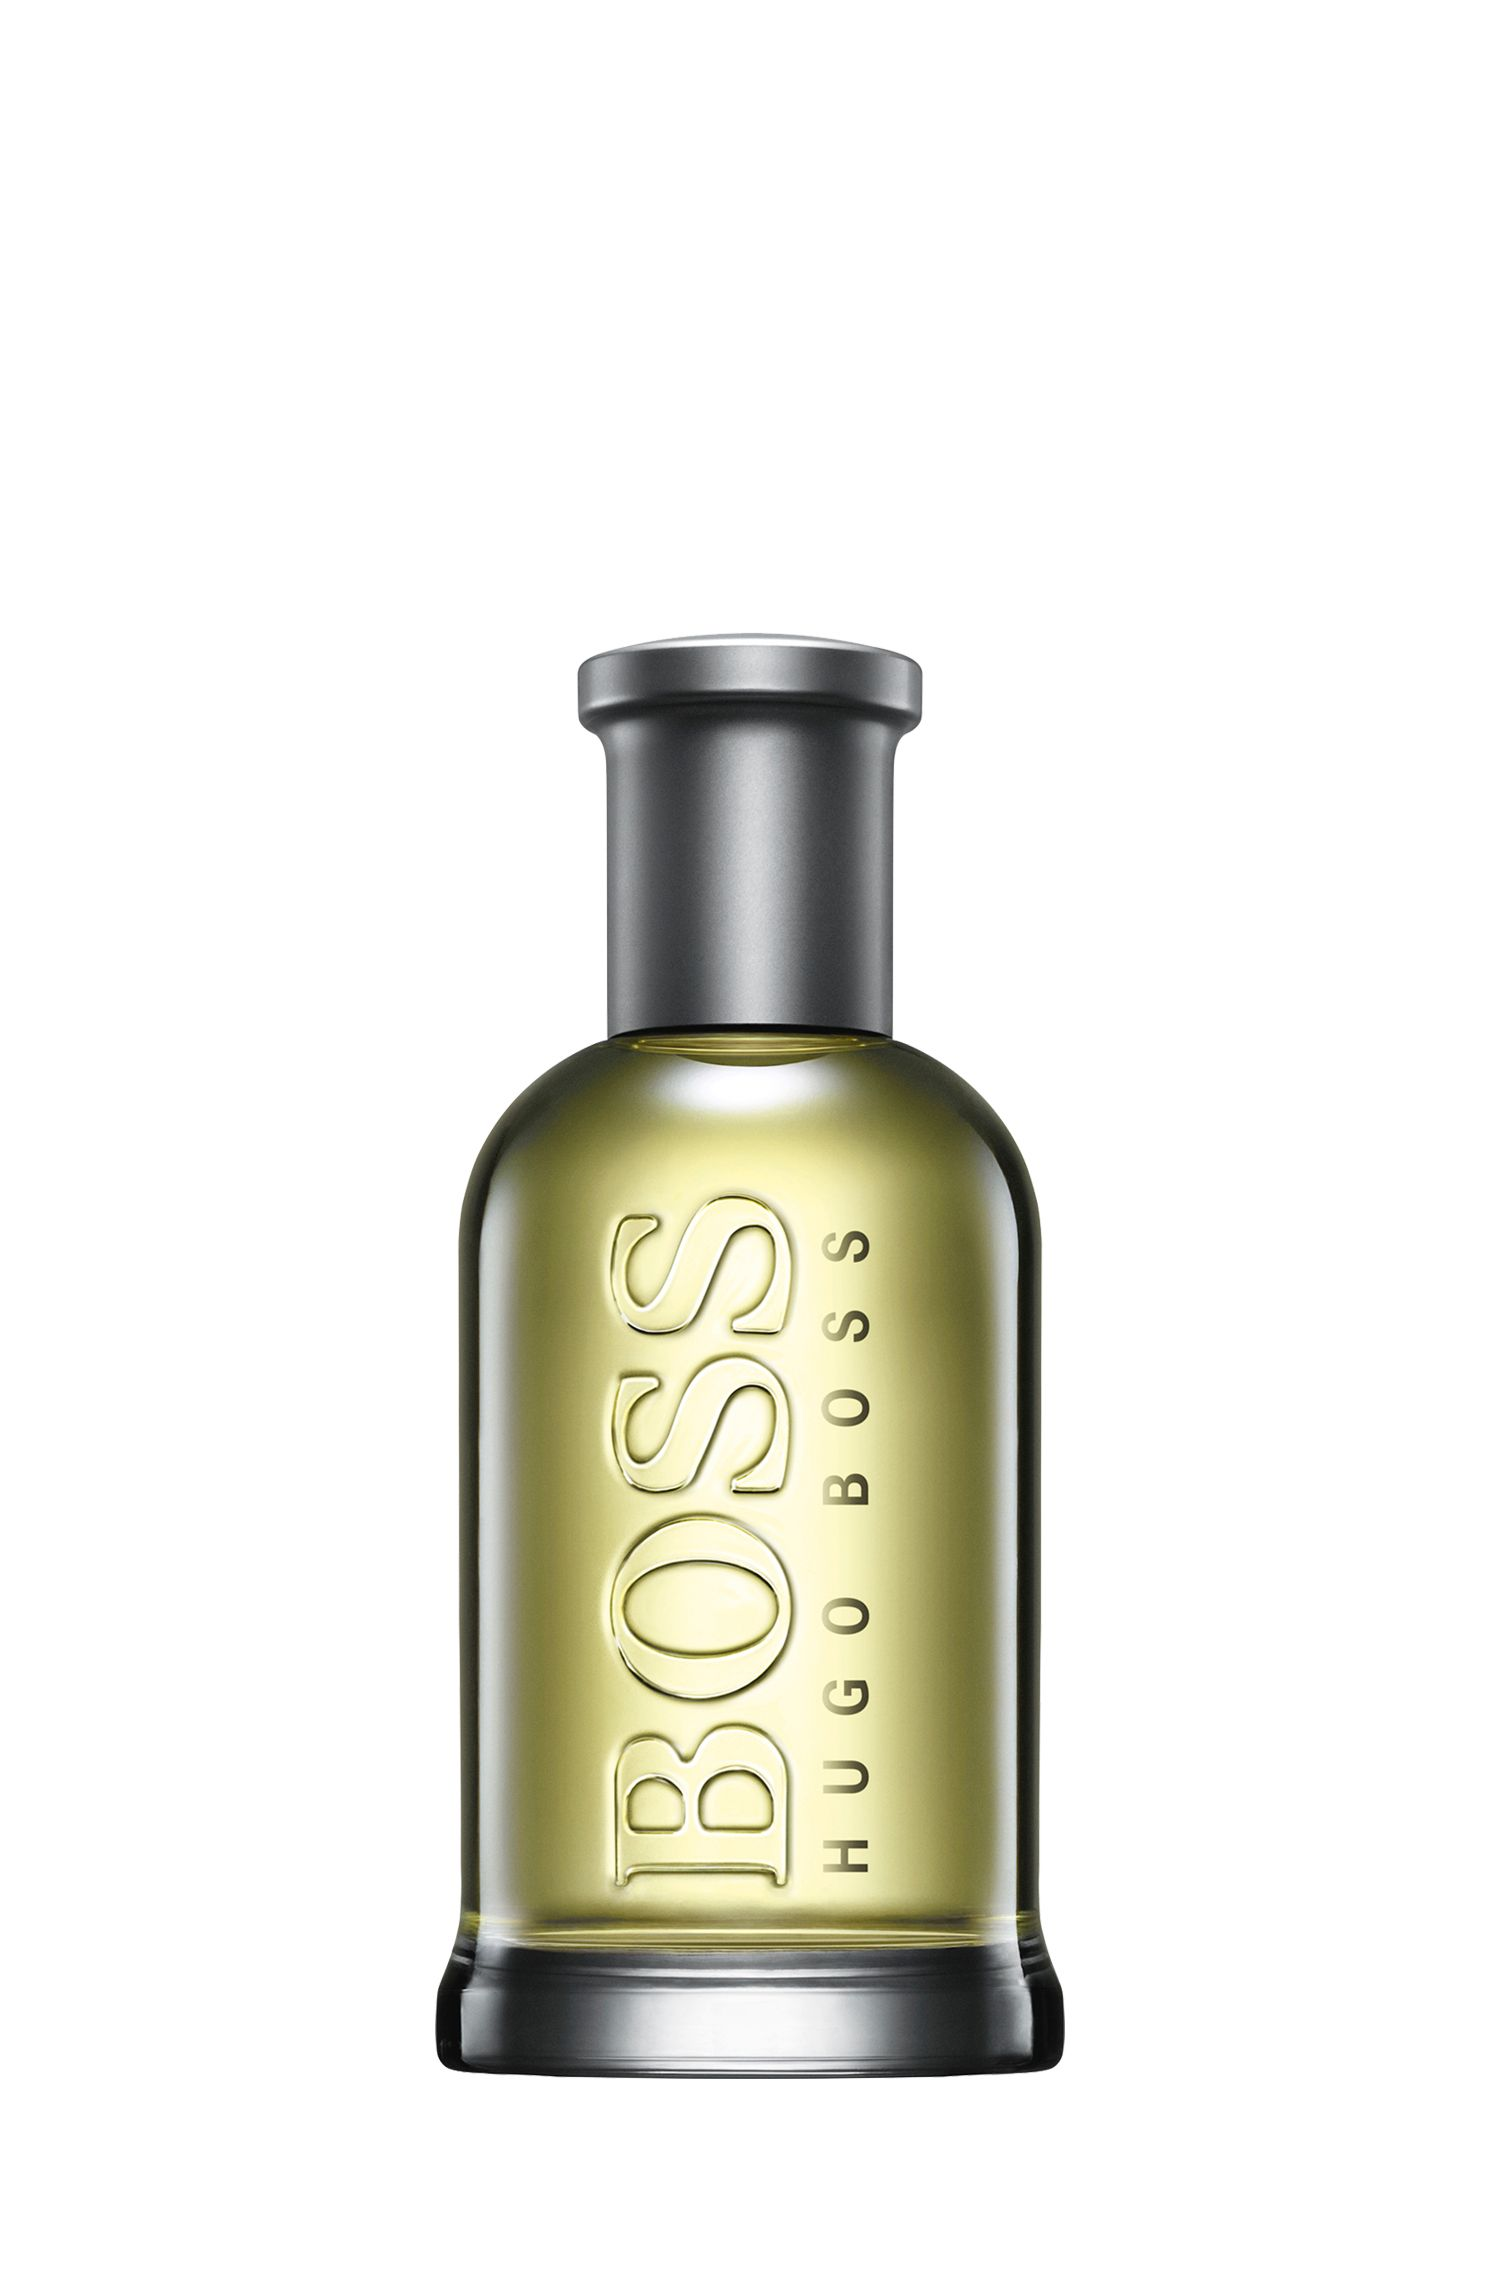 'BOSS Bottled' | 1.6 fl. oz. (50 mL) Eau de Toilette